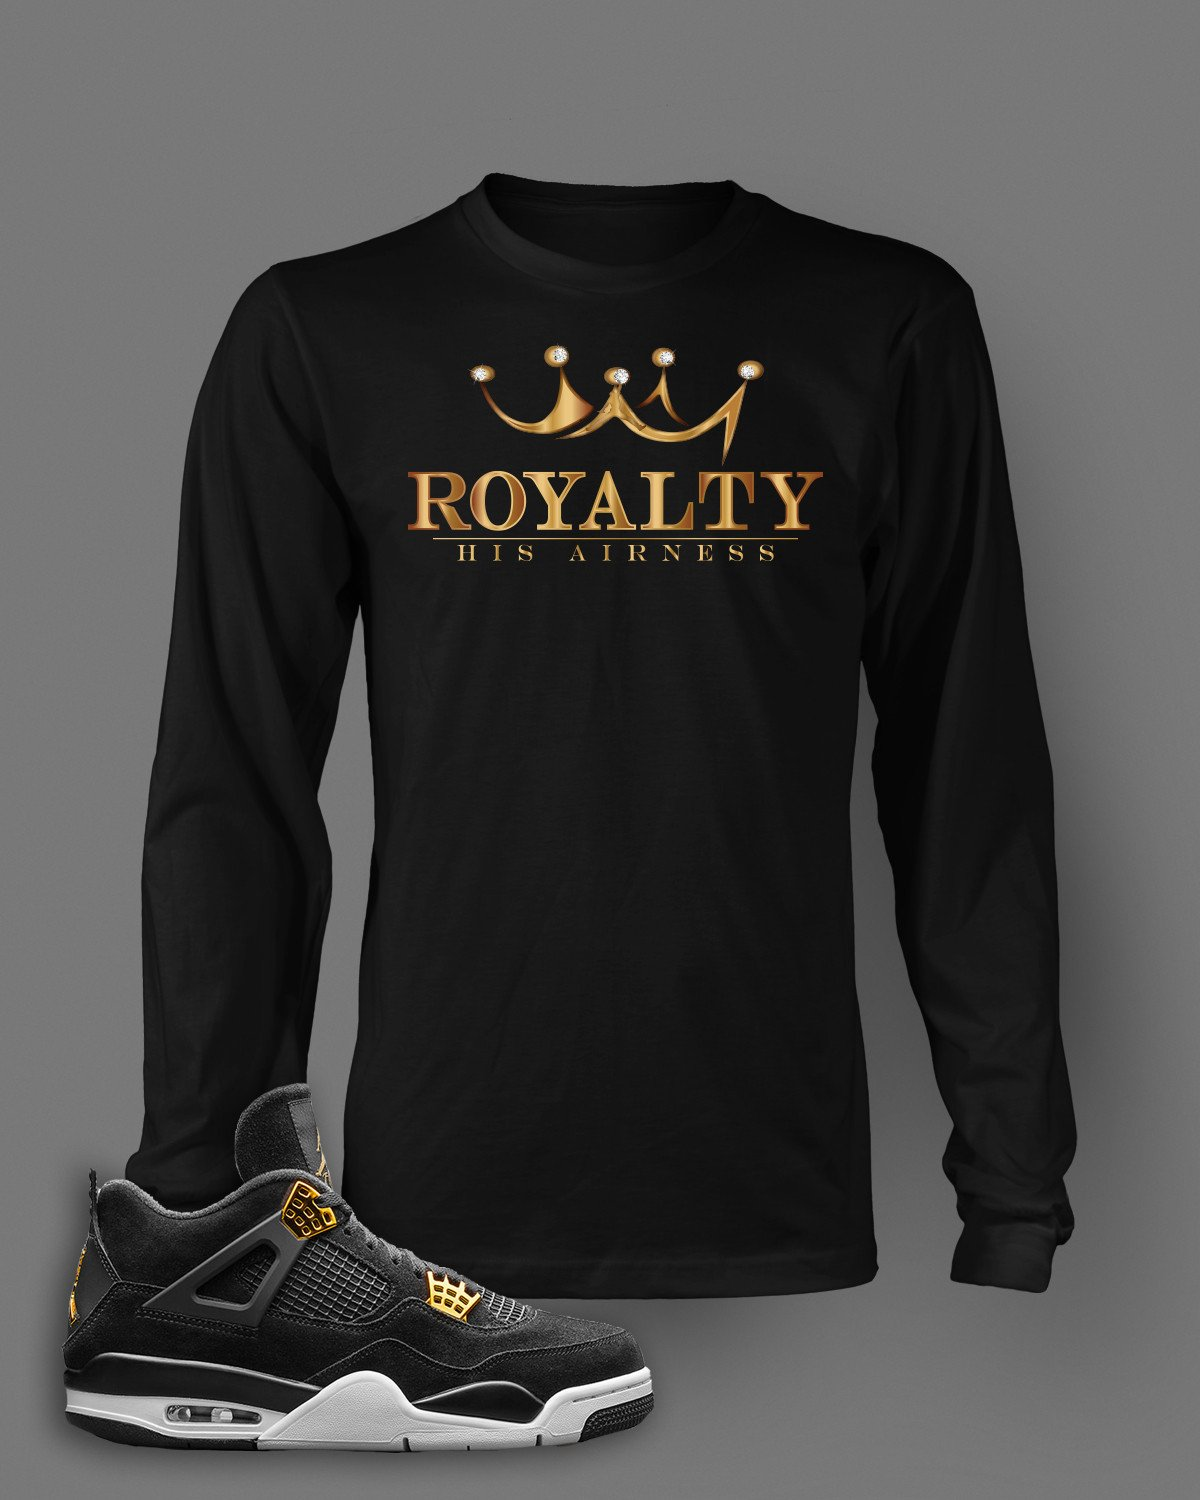 8113eb78c71c ... Match Jordan 4 royalty shirts retro 4 royalty sneaker tees. Jordan 4  Royalty Tees Shirts ...